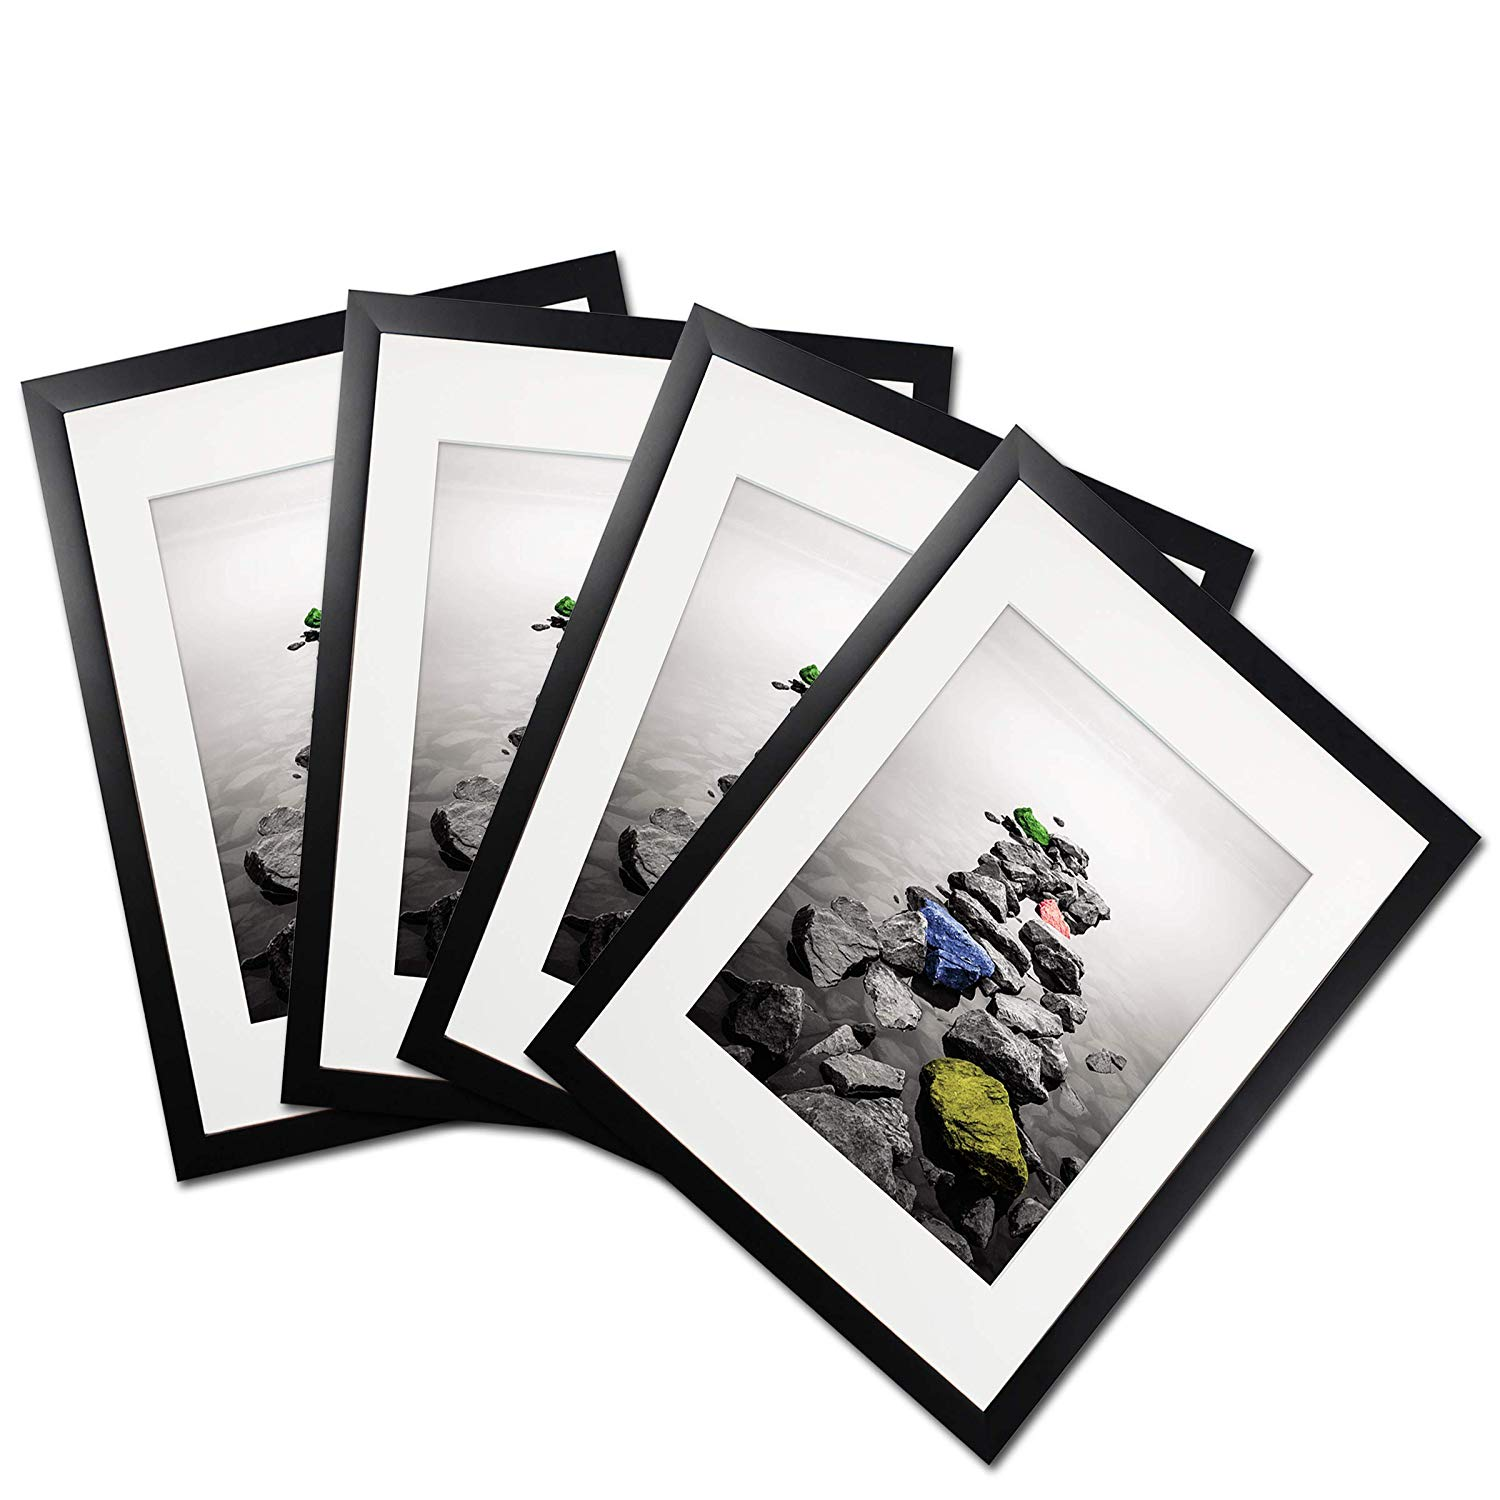 Get Quotations  C2 Bx14 Black Picture Frame Document Diploma Frames Made To Display Pictures 8x10 With